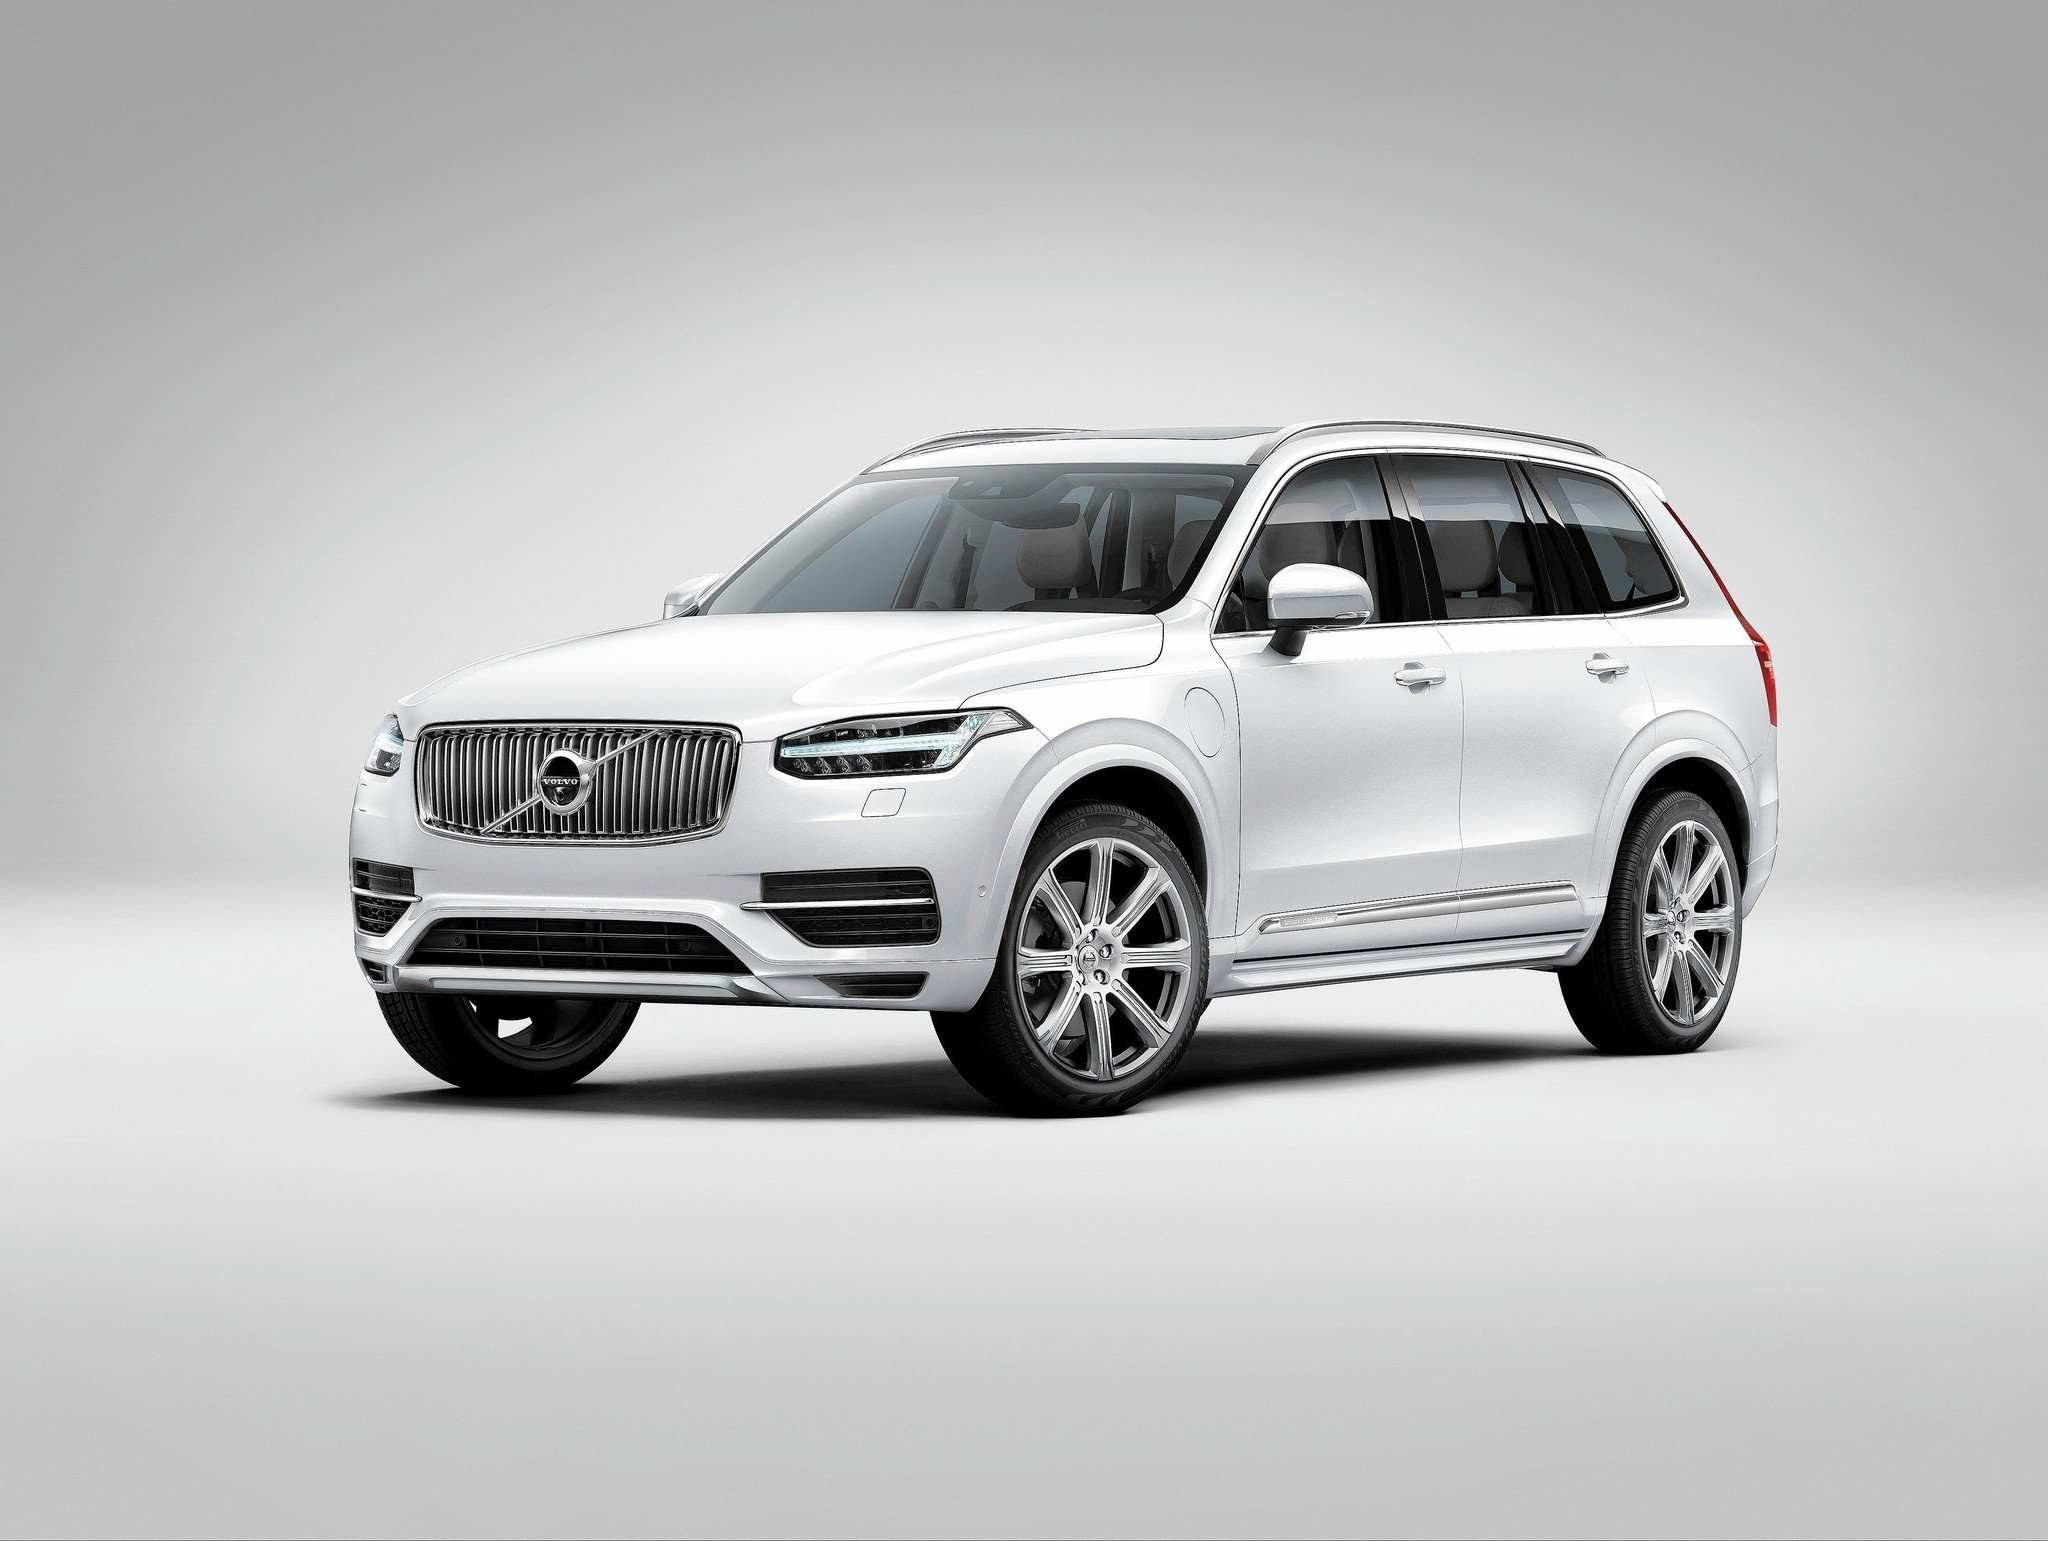 2016 volvo xc90 suv stands out in crowded family class chicago tribune. Black Bedroom Furniture Sets. Home Design Ideas